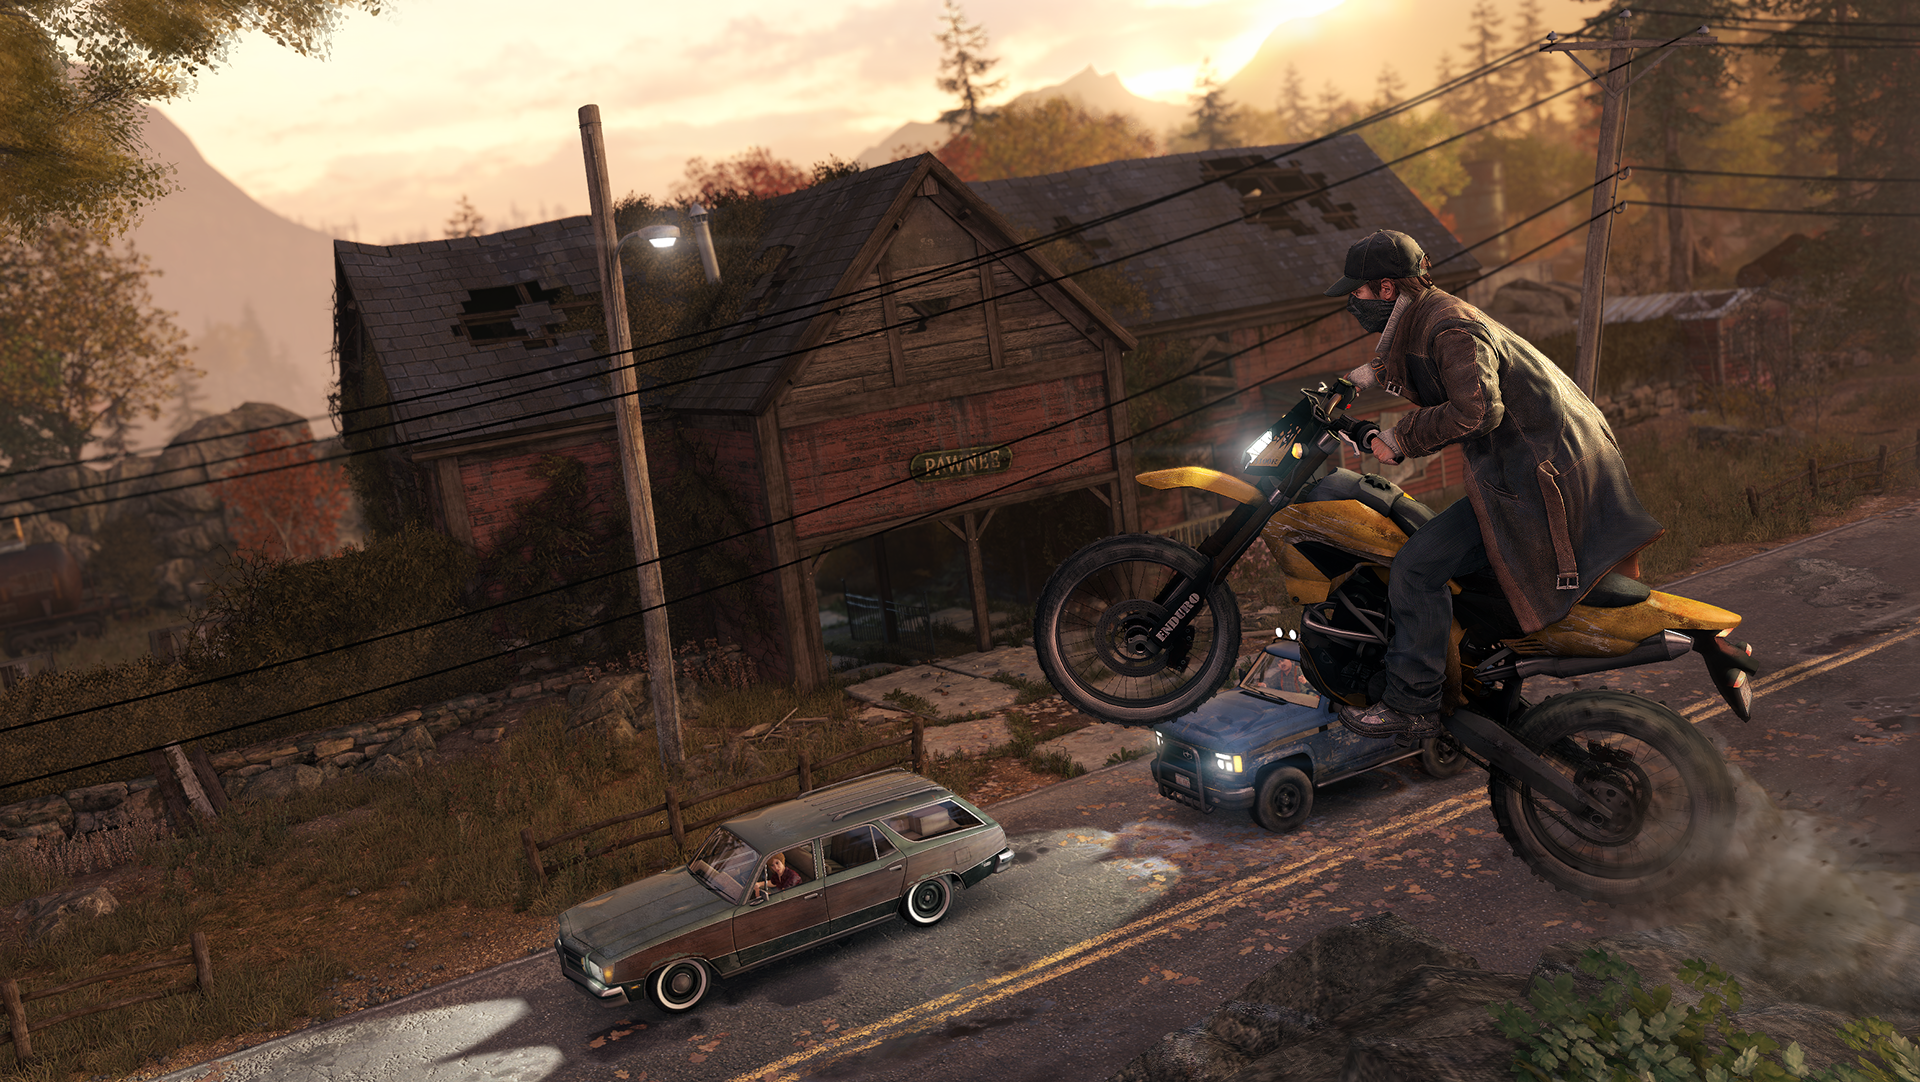 Watch_dogs_motorcycle